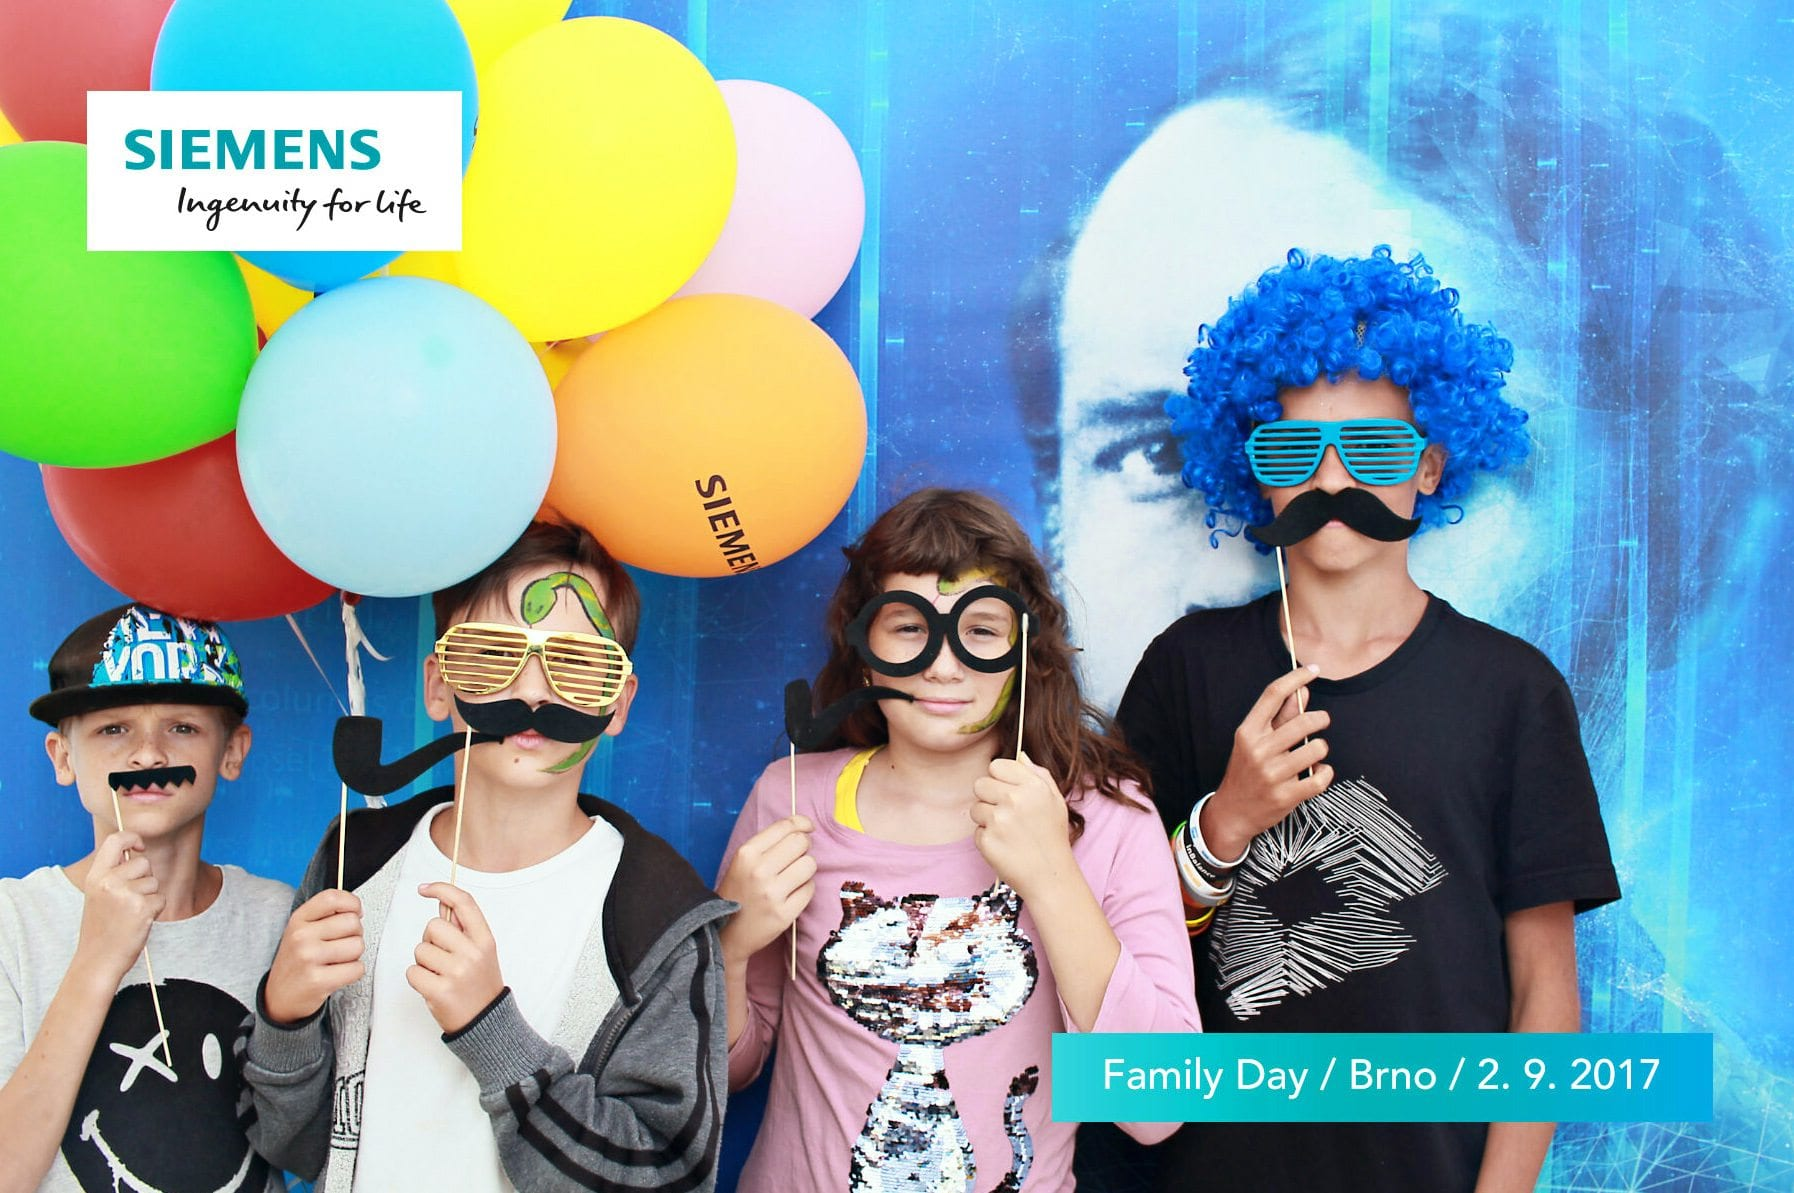 fotokoutek-siemens-family-day-2-9-2017-304995